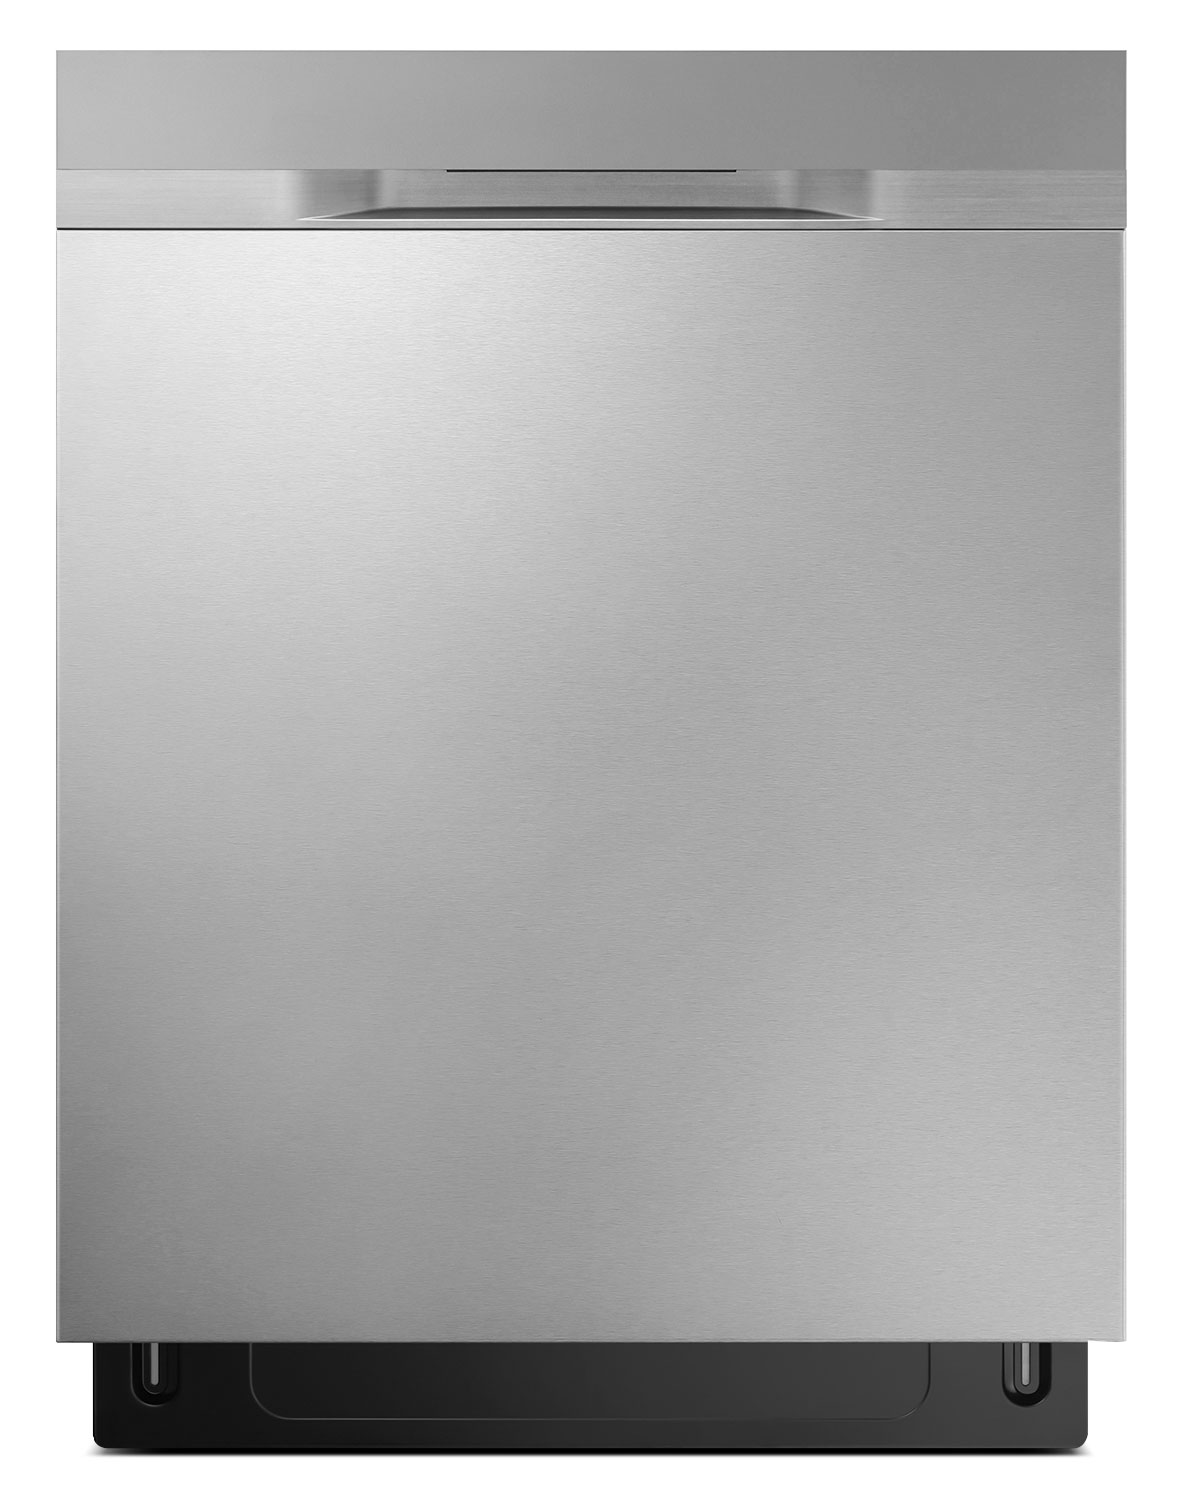 Clean-Up - Samsung Built-In Dishwasher with Auto-Open Drying – DW80K5050US/AC